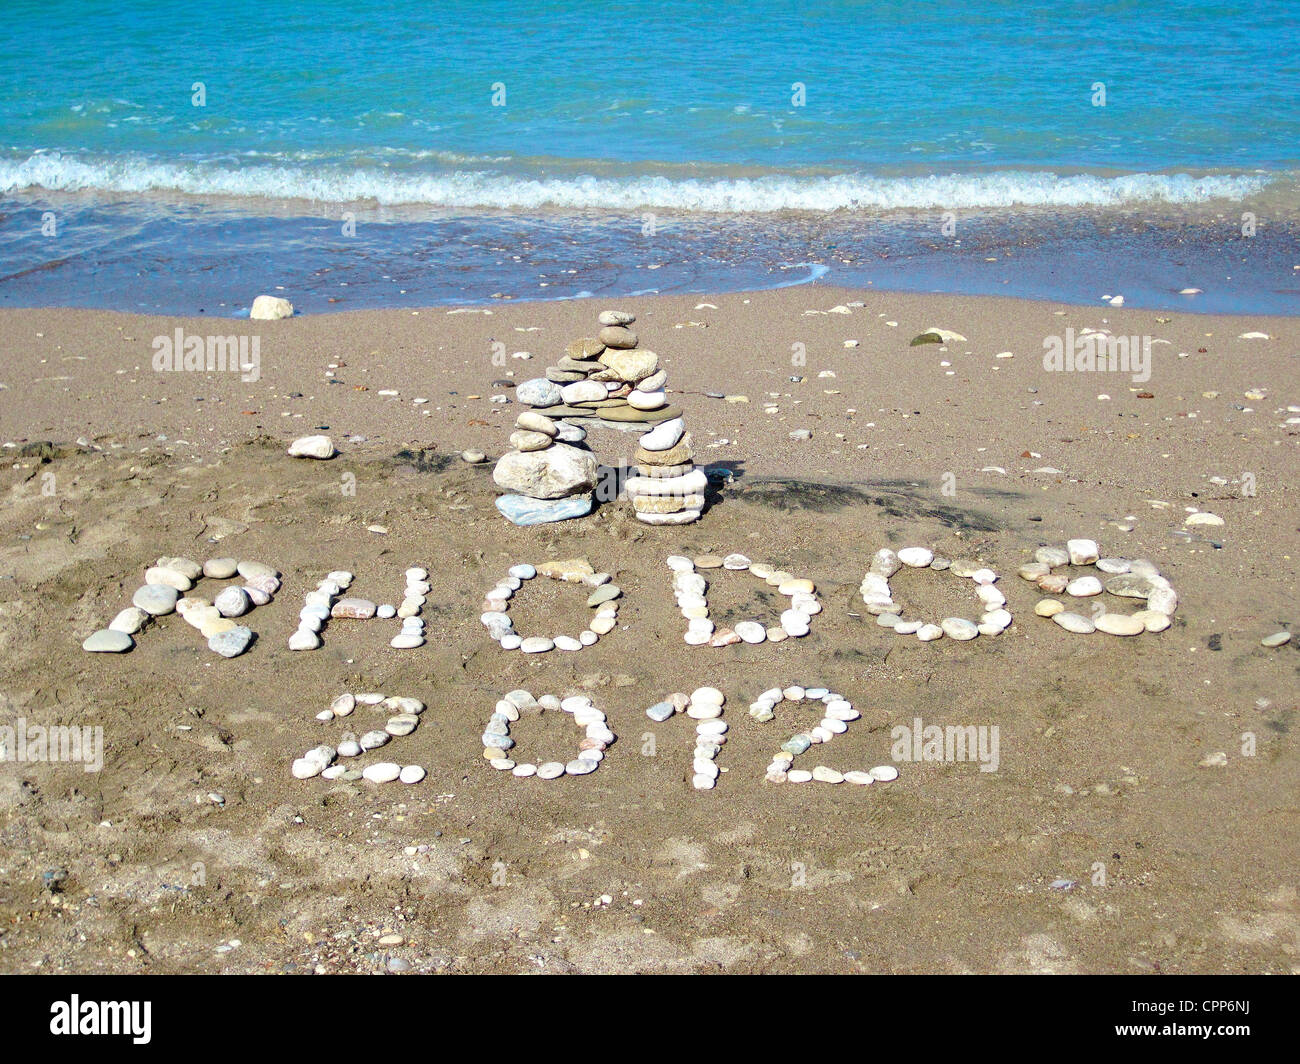 Rhodos 2012 spelt out using stones on Afandou beach, Rhodes Greece - Stock Image